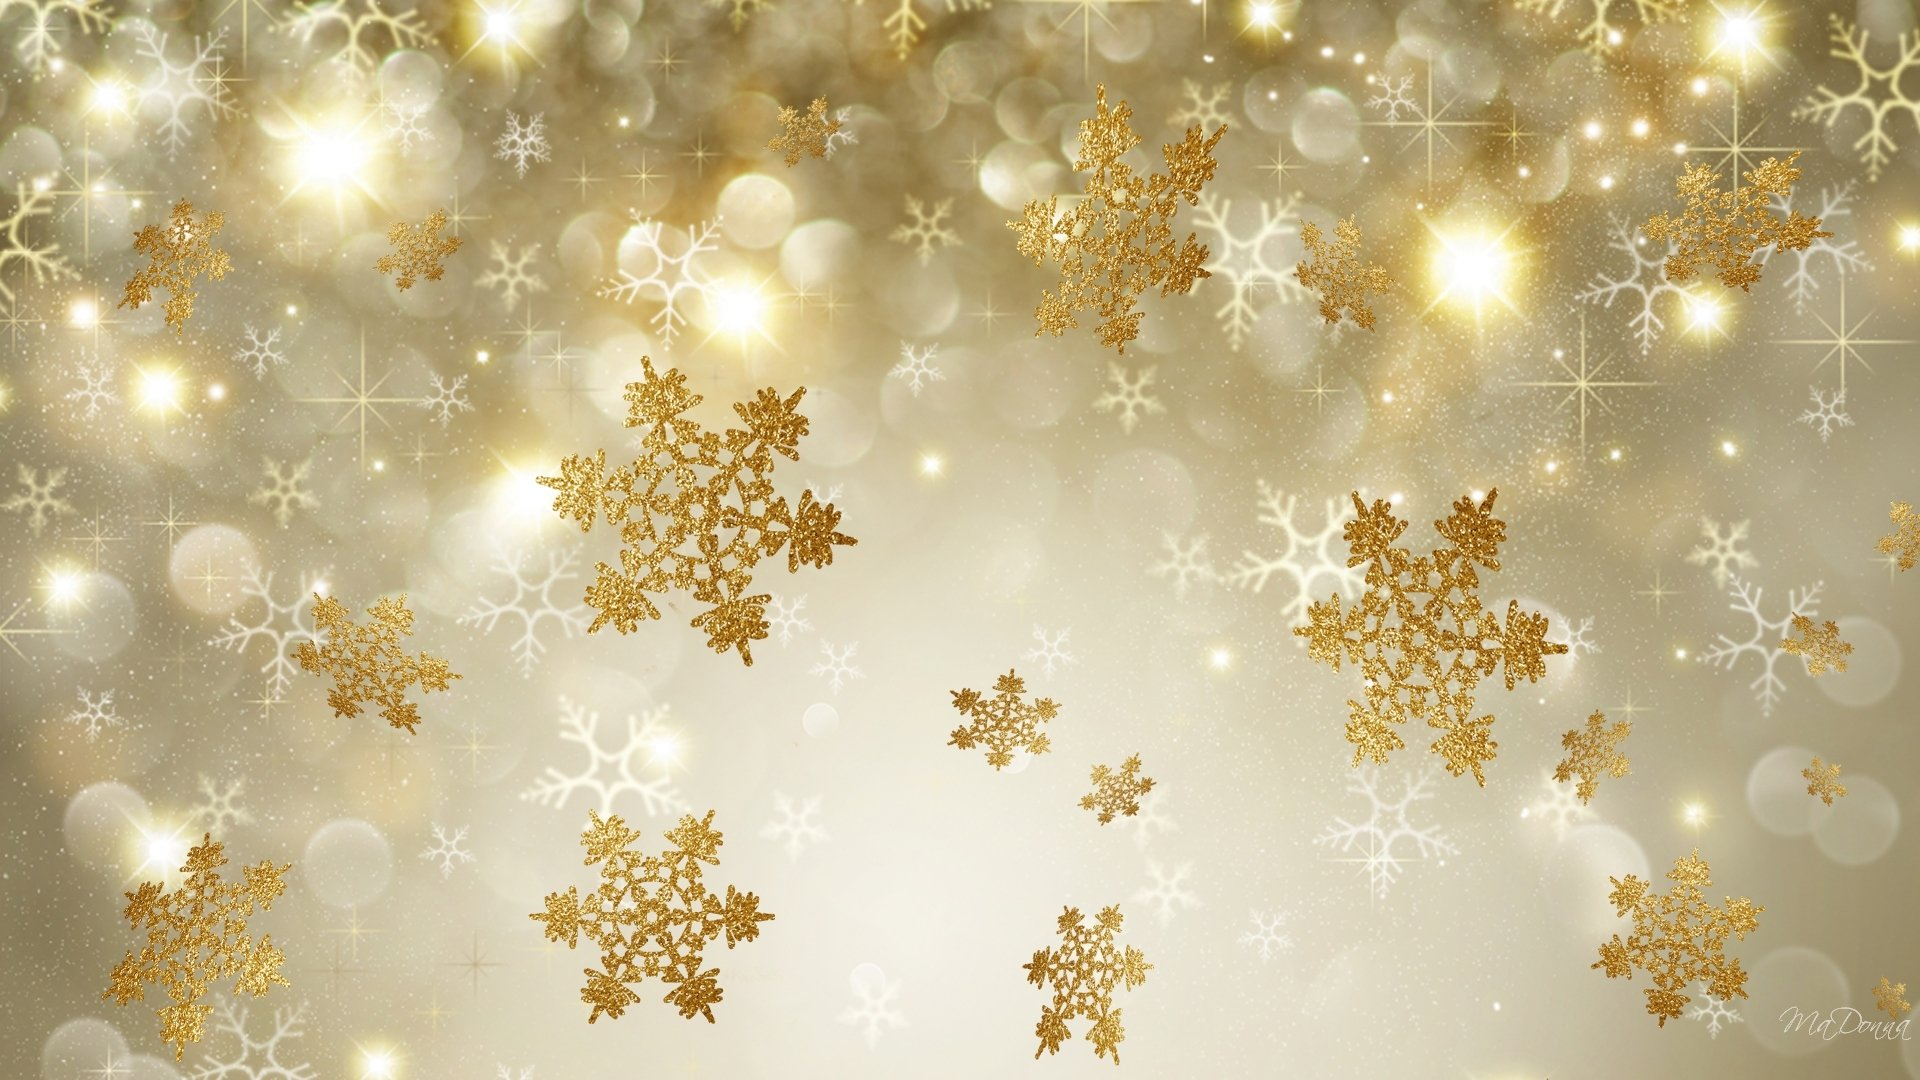 Iphone 5 Falling Snow Wallpaper Golden Snowflakes Hd Wallpaper Background Image